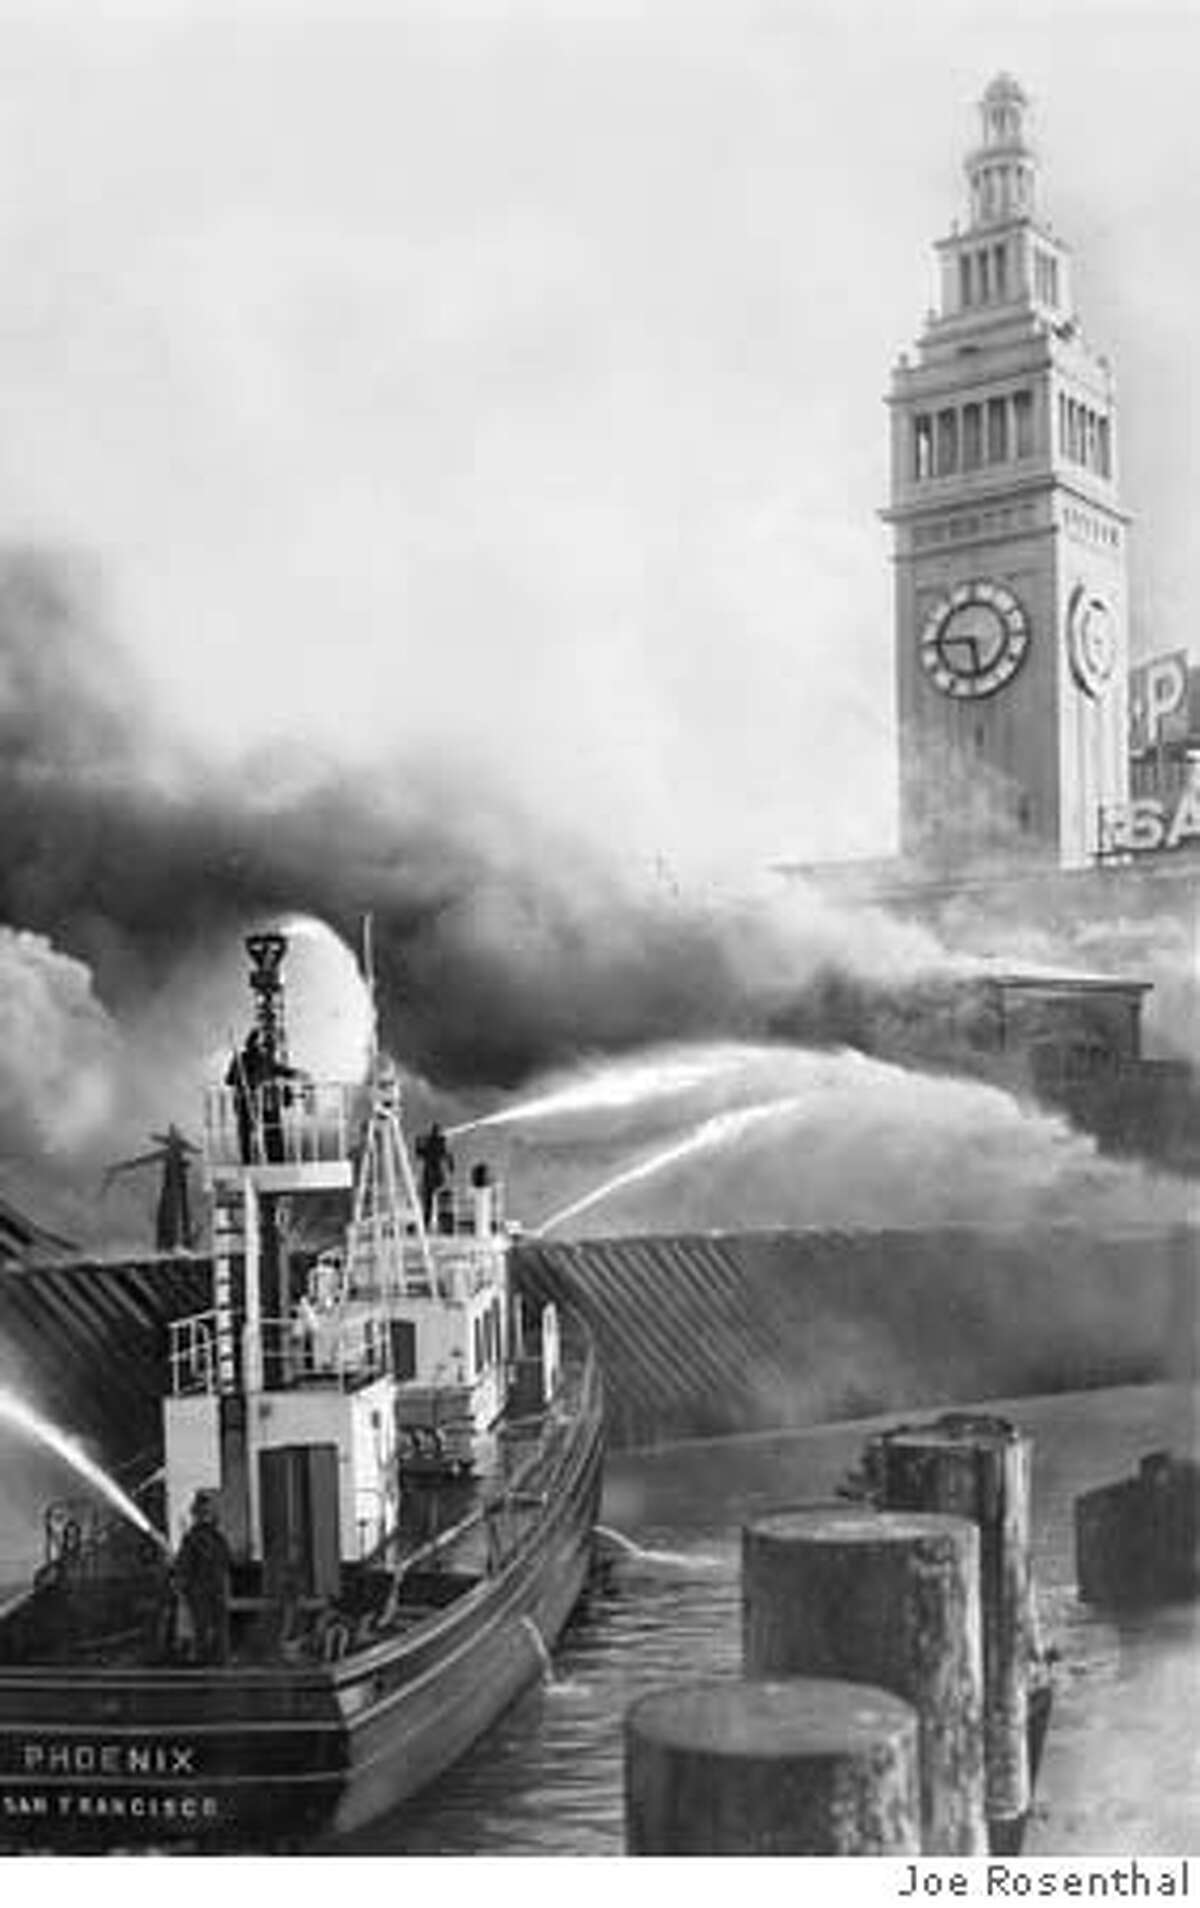 FIREBOAT2-B-01APR55-MN-JR - Fireboat Phoenix pured streams of water onto blazing peir. The Ferry building Tower was not damaged. Photo by Joe Rosenthal. Metro#Metro#Chronicle#9/25/2004#ALL#5star#b4#422133952